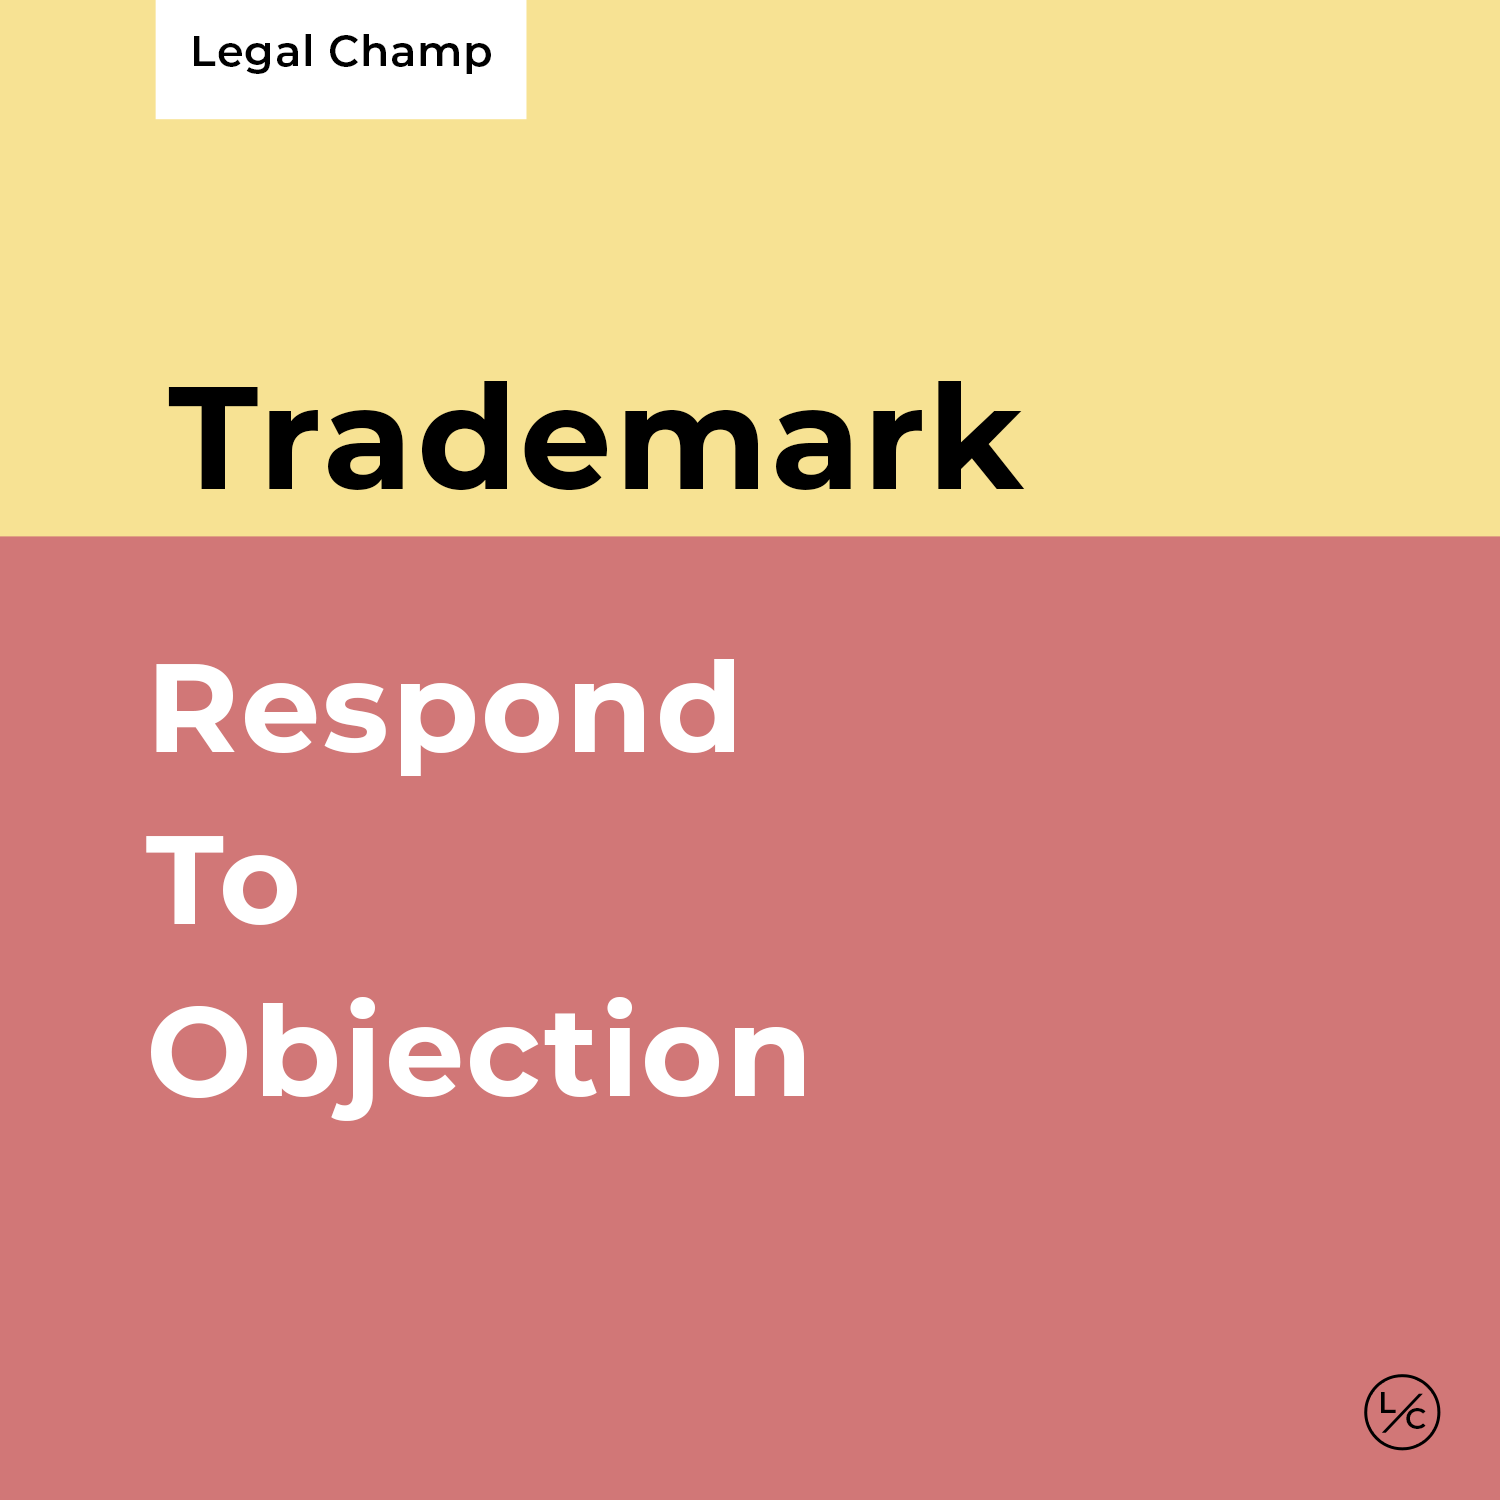 Respond To Objection